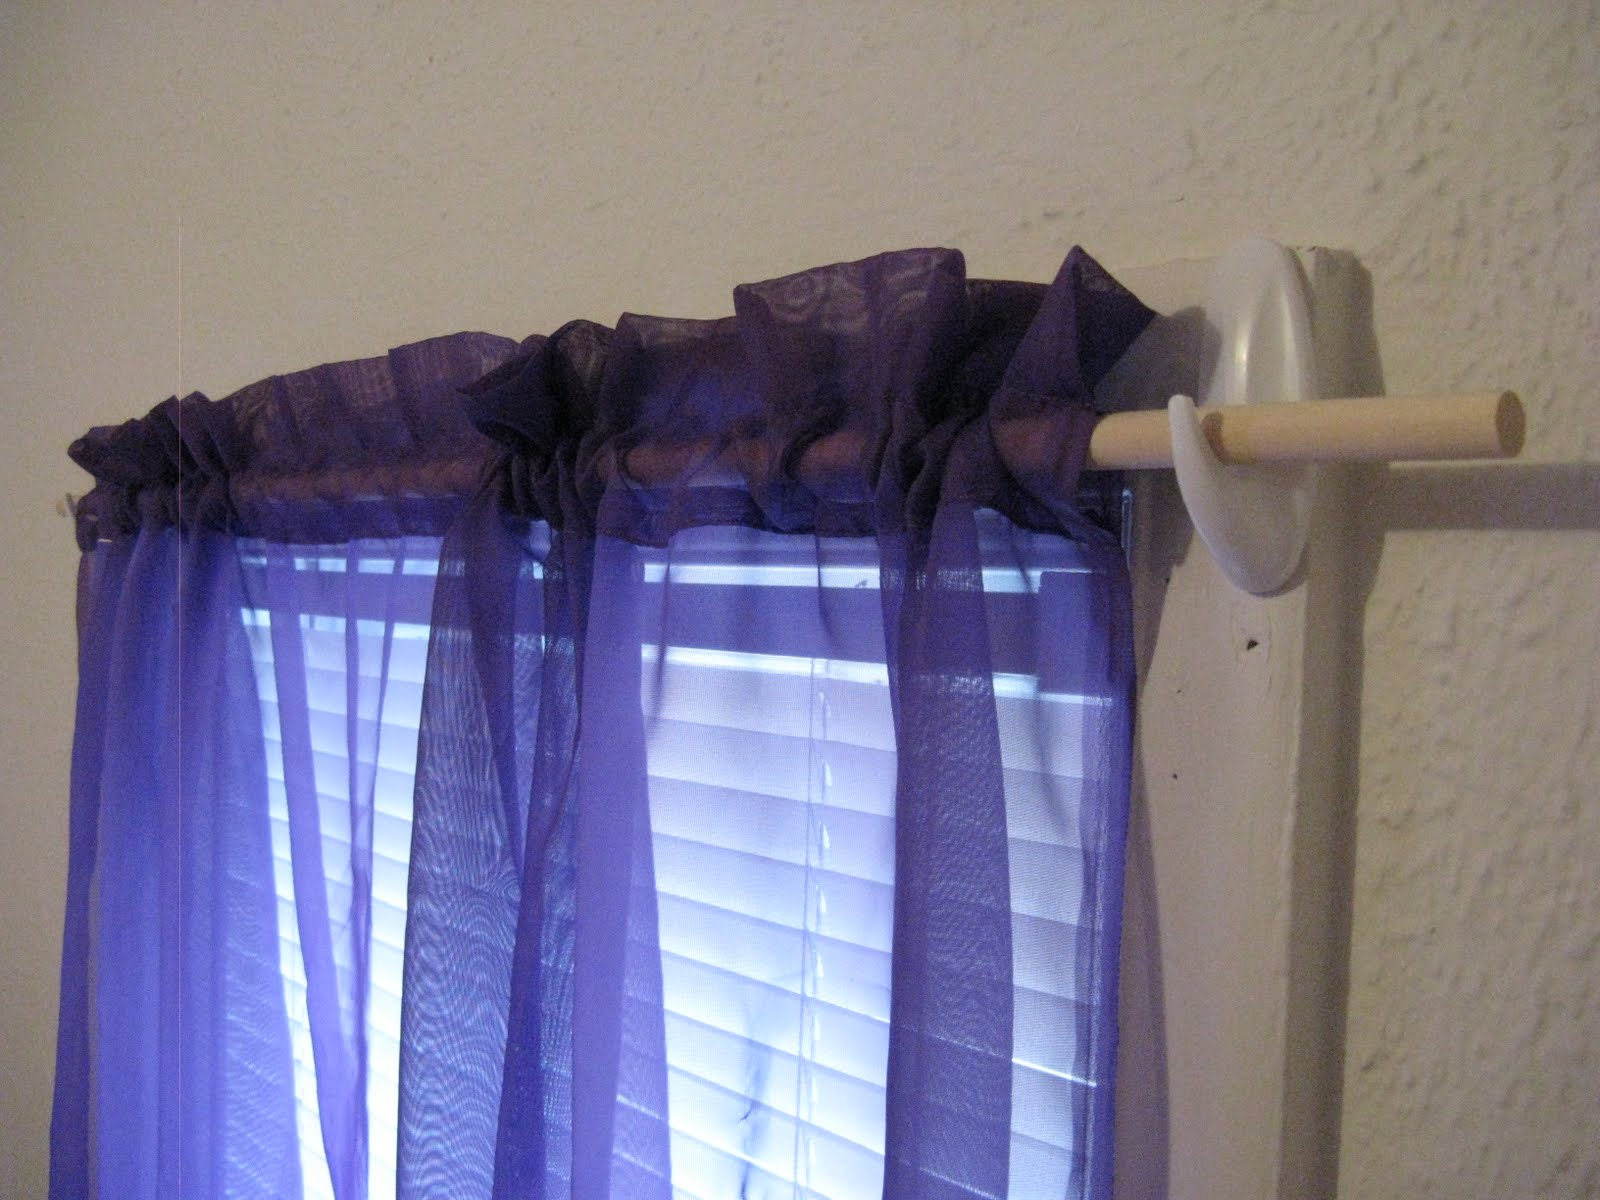 3 Inch Rod Pocket Sheer Curtains 3M Command Soap Dish